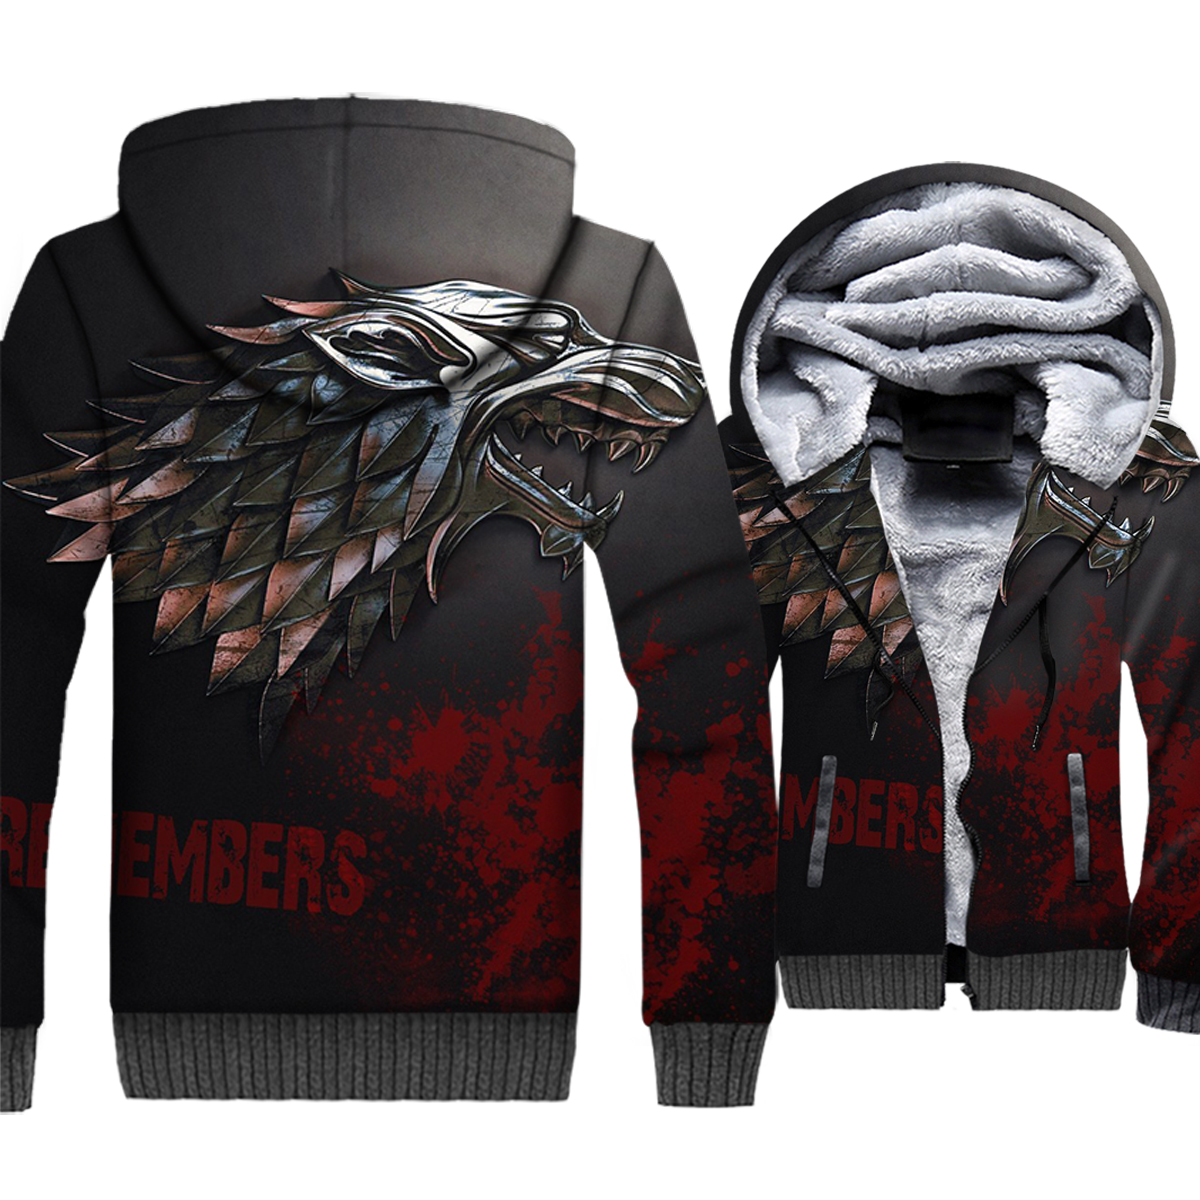 Game of Thrones 3D veste hommes Hip Hop Hoodies le nord se souvient maison Stark Wolf sweat hiver maison Targaryen Dragon Coat